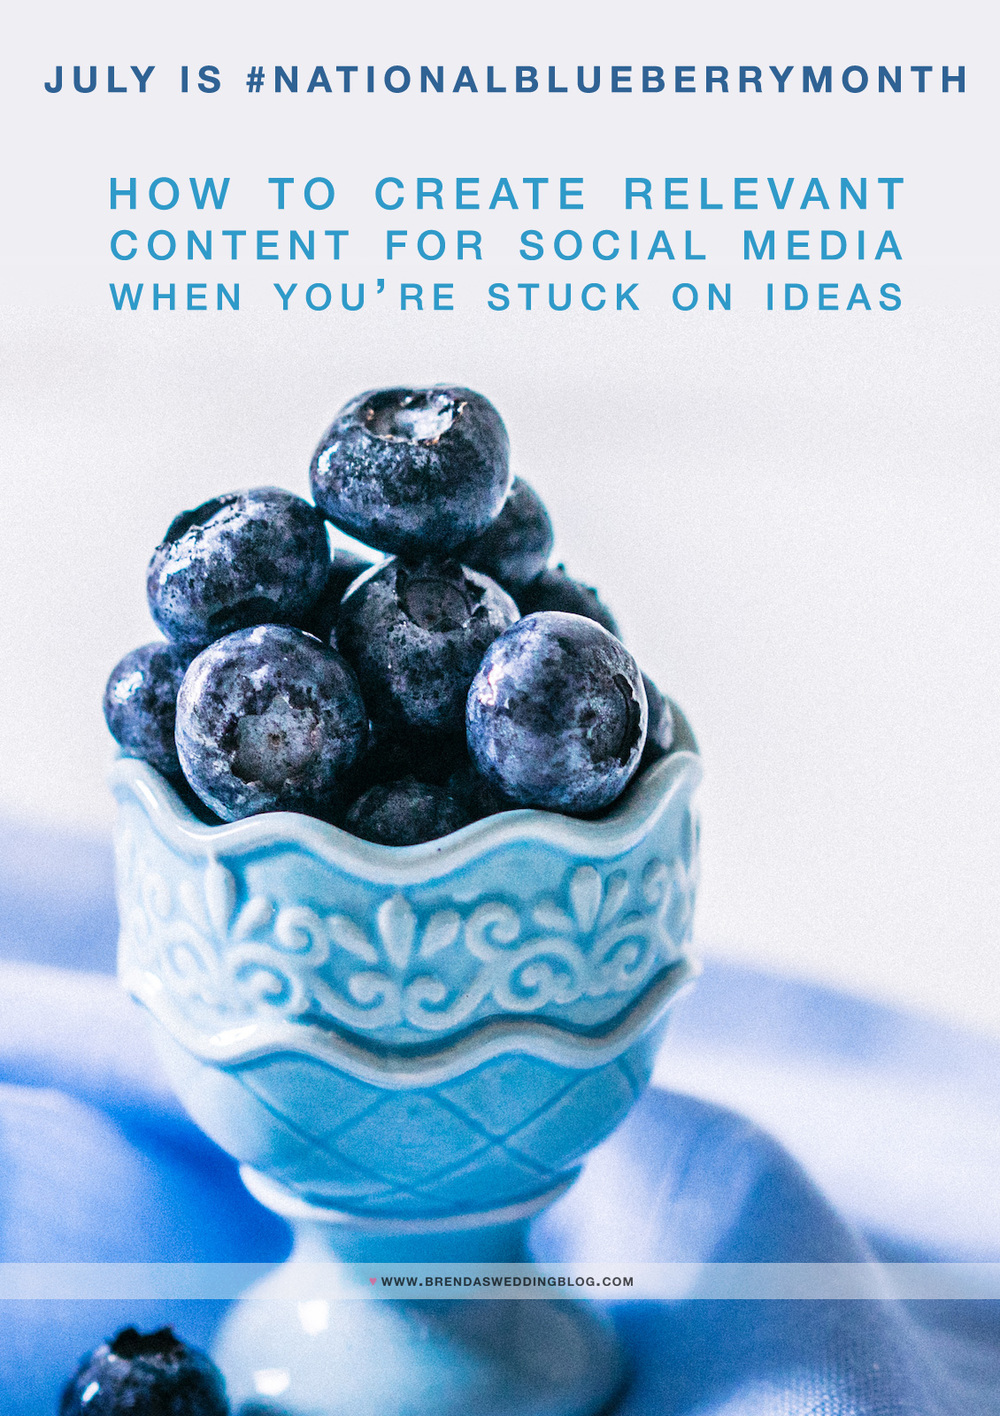 How to Create Relevant Content for Social Media when you're stuck on ideas - July 2016 edition